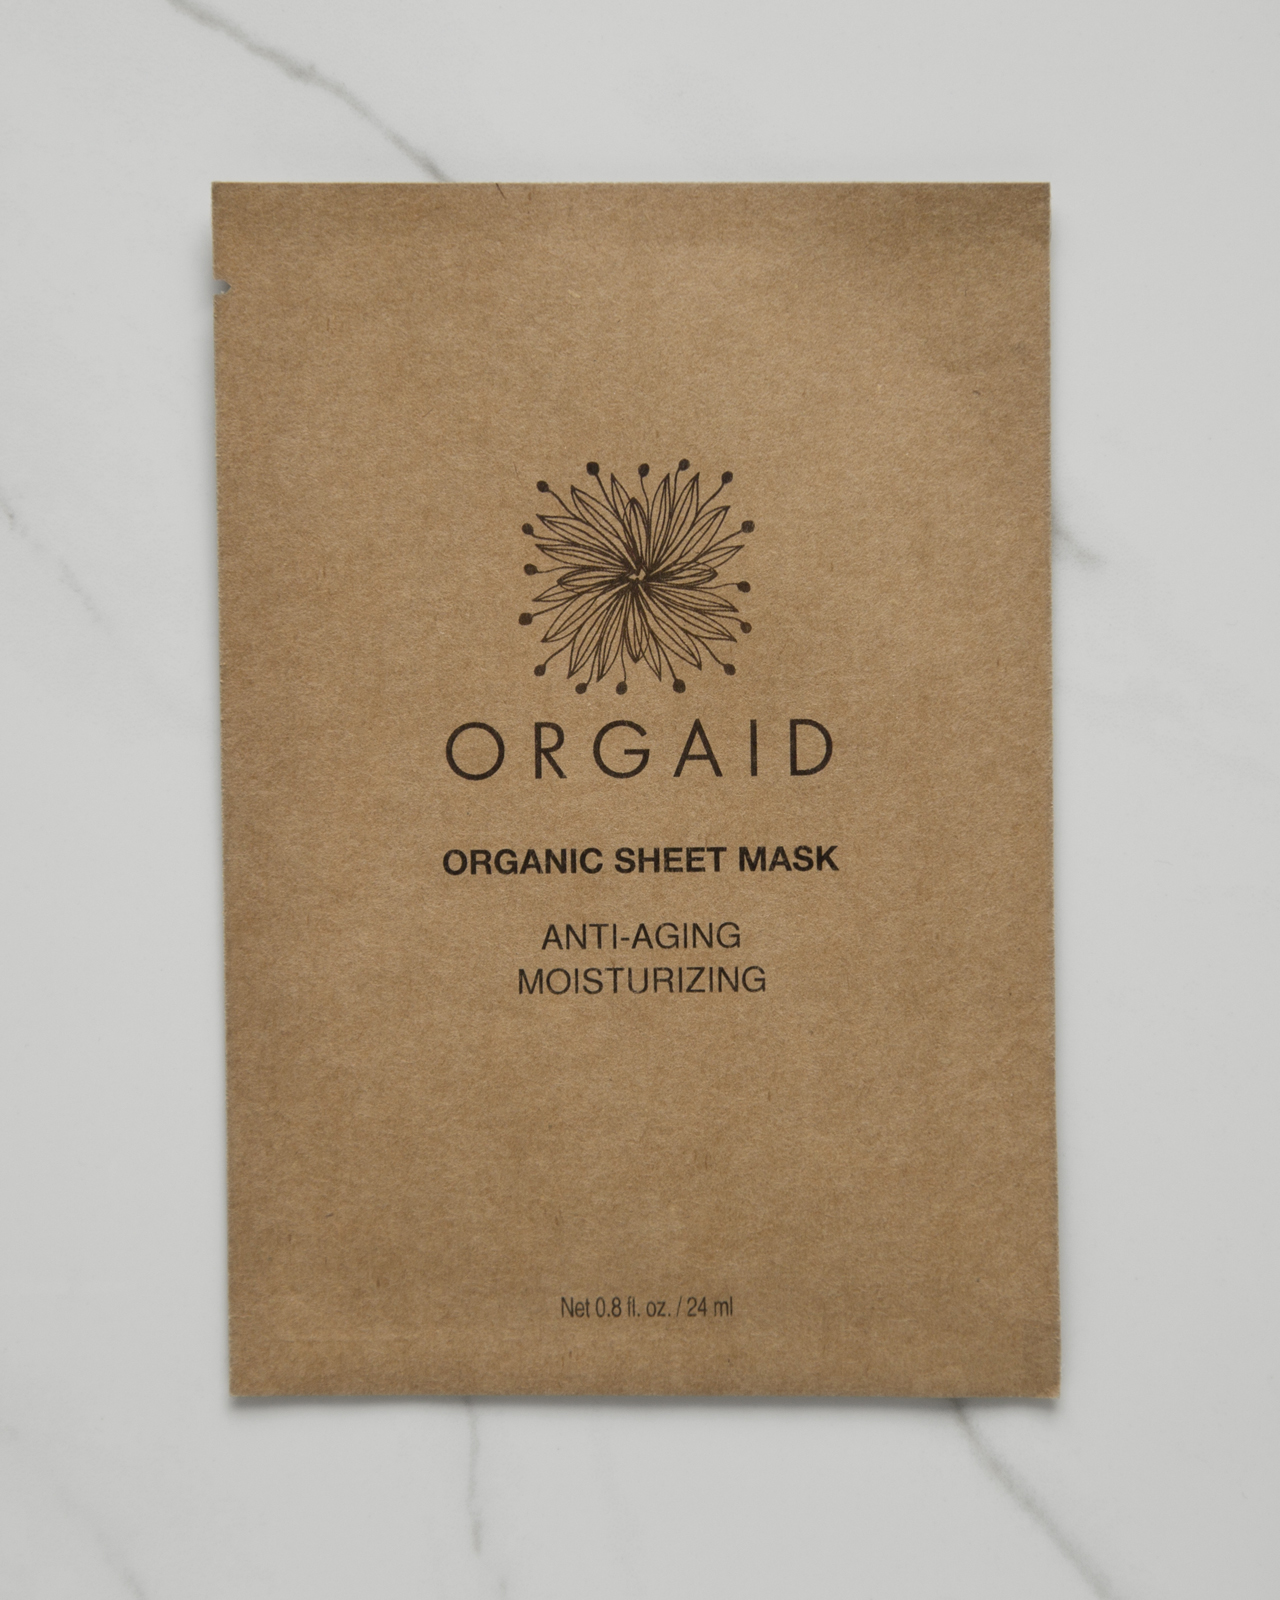 Orgaid Anti-Aging & Moisturizing Organic Sheet Mask $6